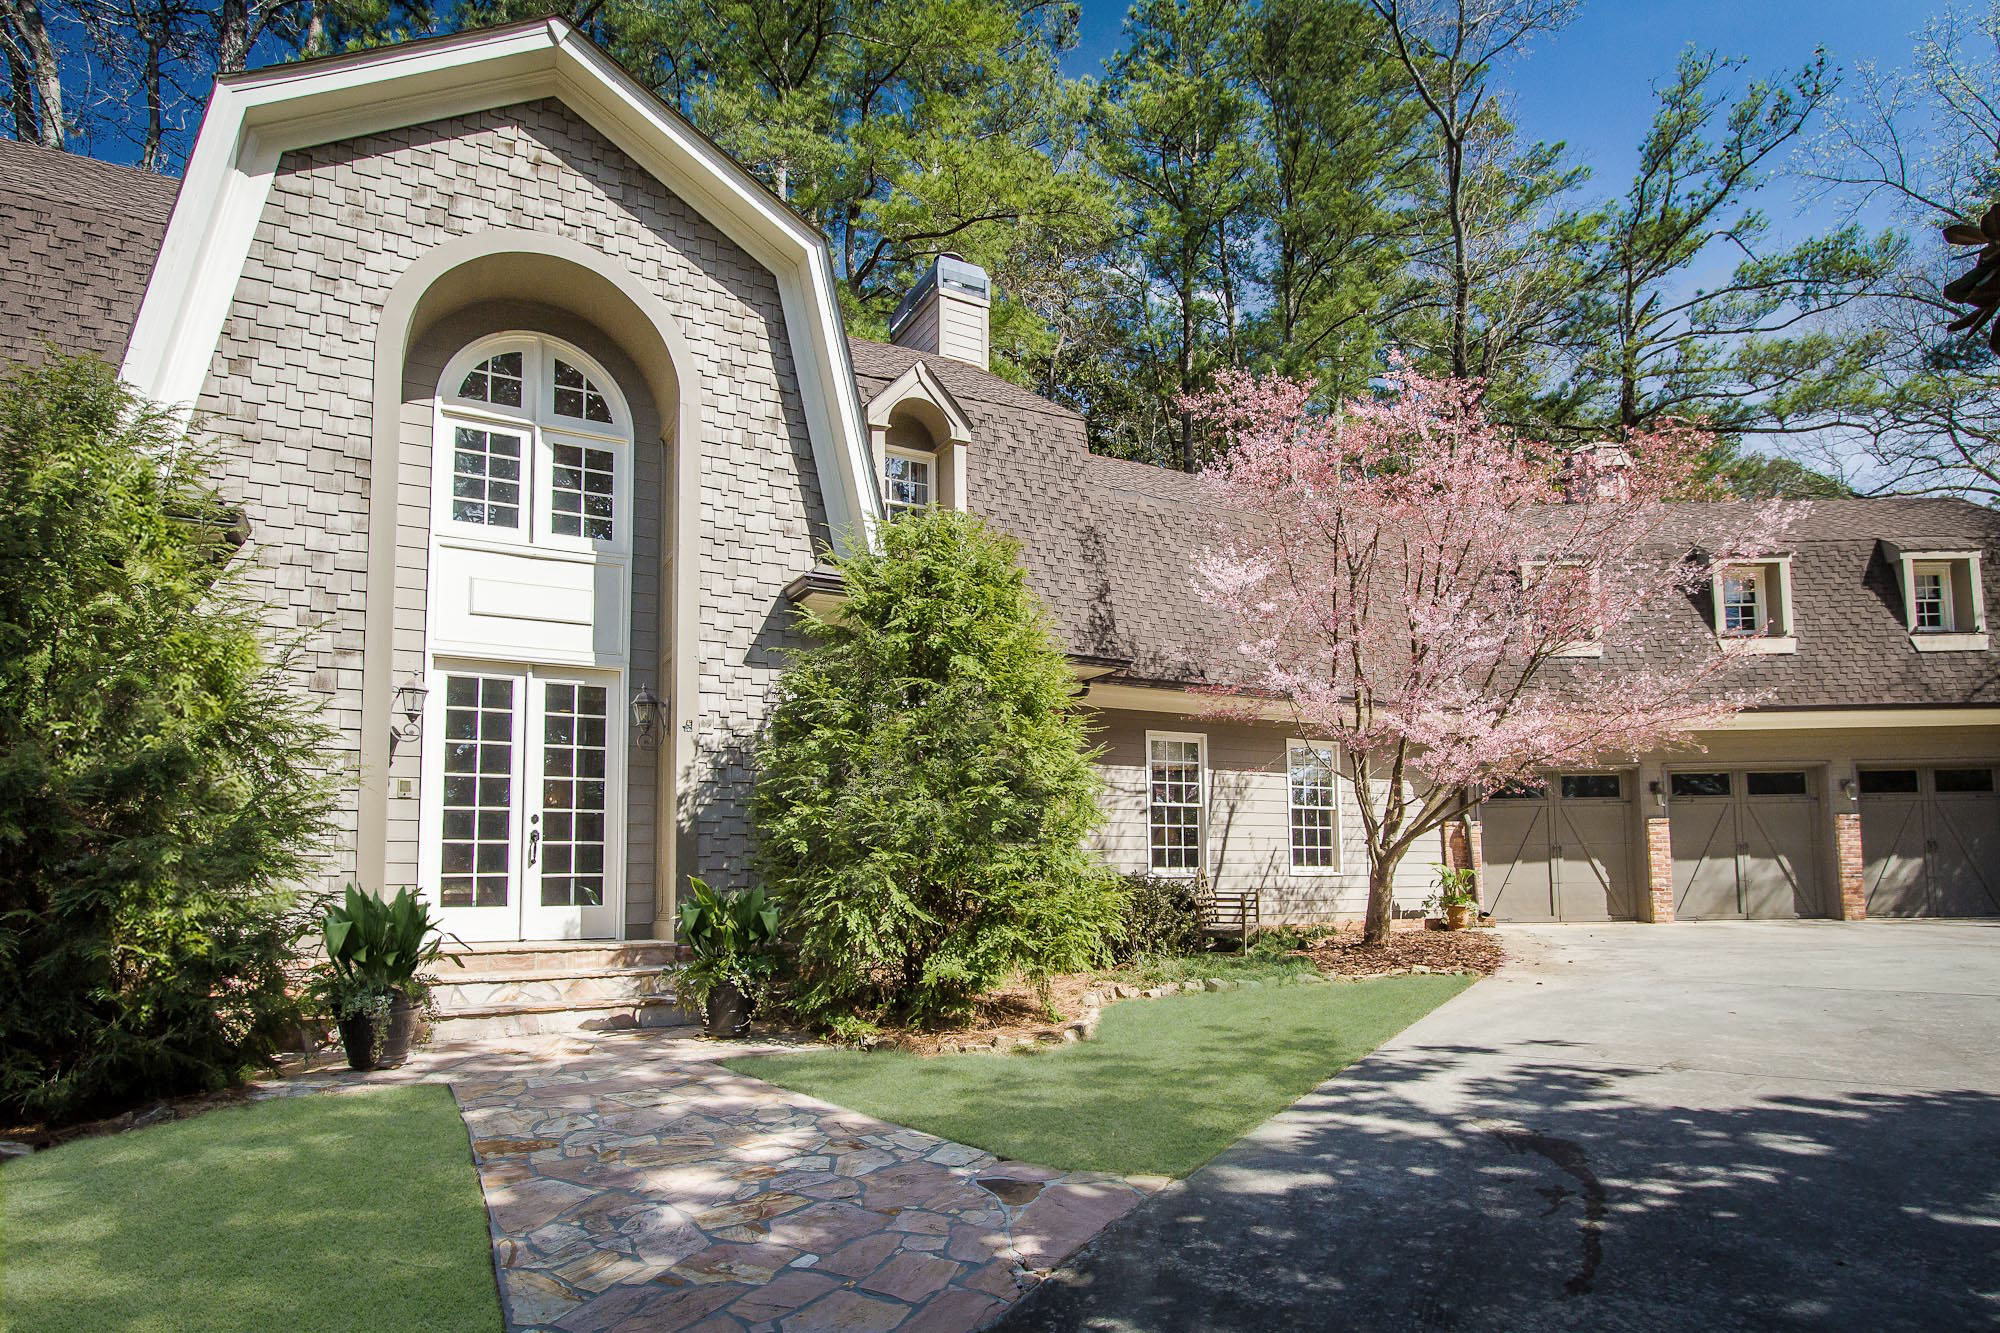 Single Family Home for Sale at Large Dutch Colonial Home With Amazing Lifestyle Floor Plan 3115 E Wood Valley Road NW Buckhead, Atlanta, Georgia, 30327 United States